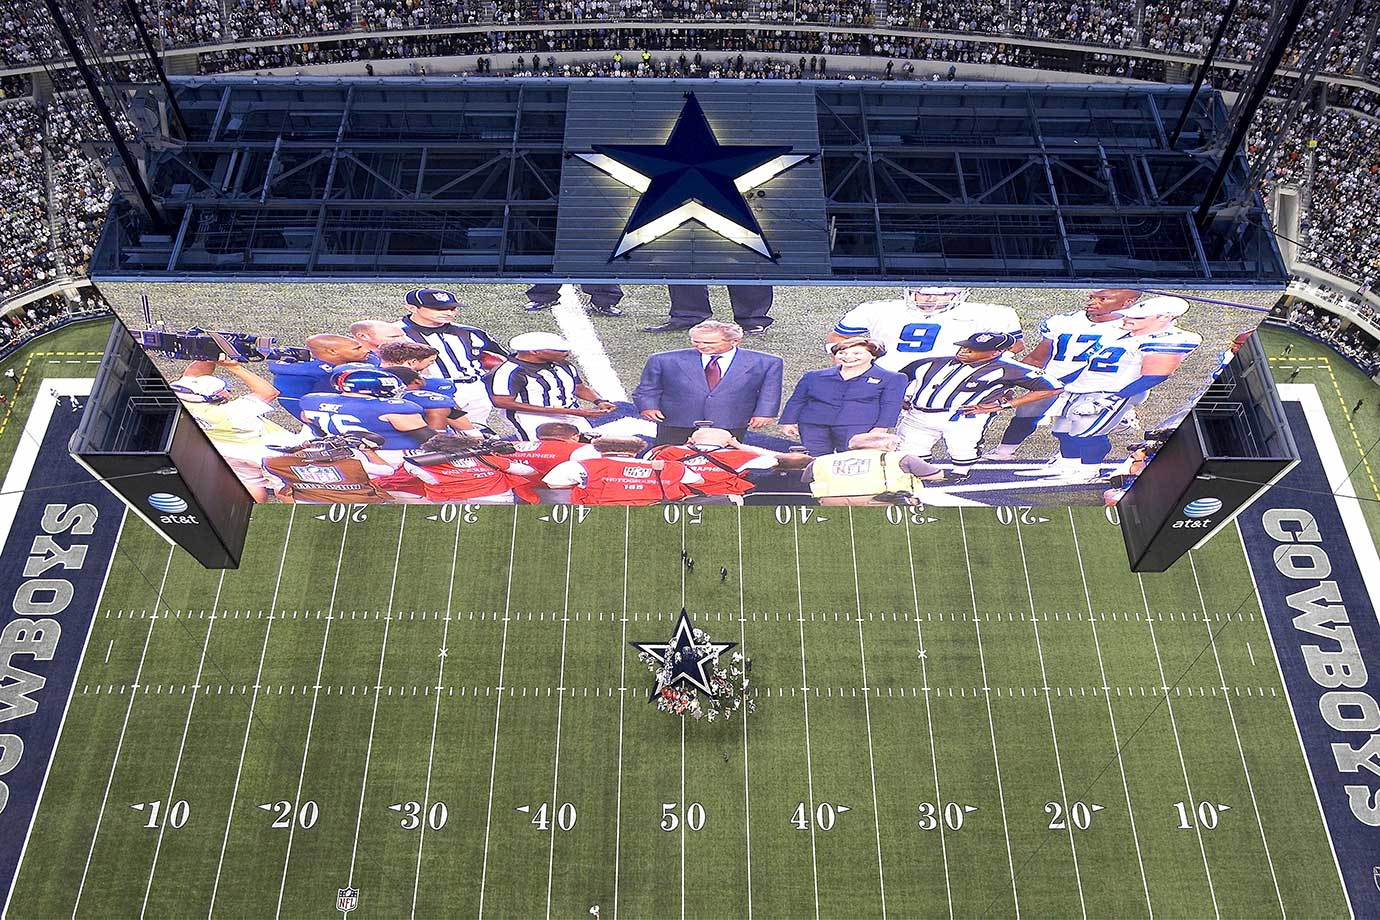 The view from inside Cowboys Stadium before Dallas played the New York Giants in September 2009.